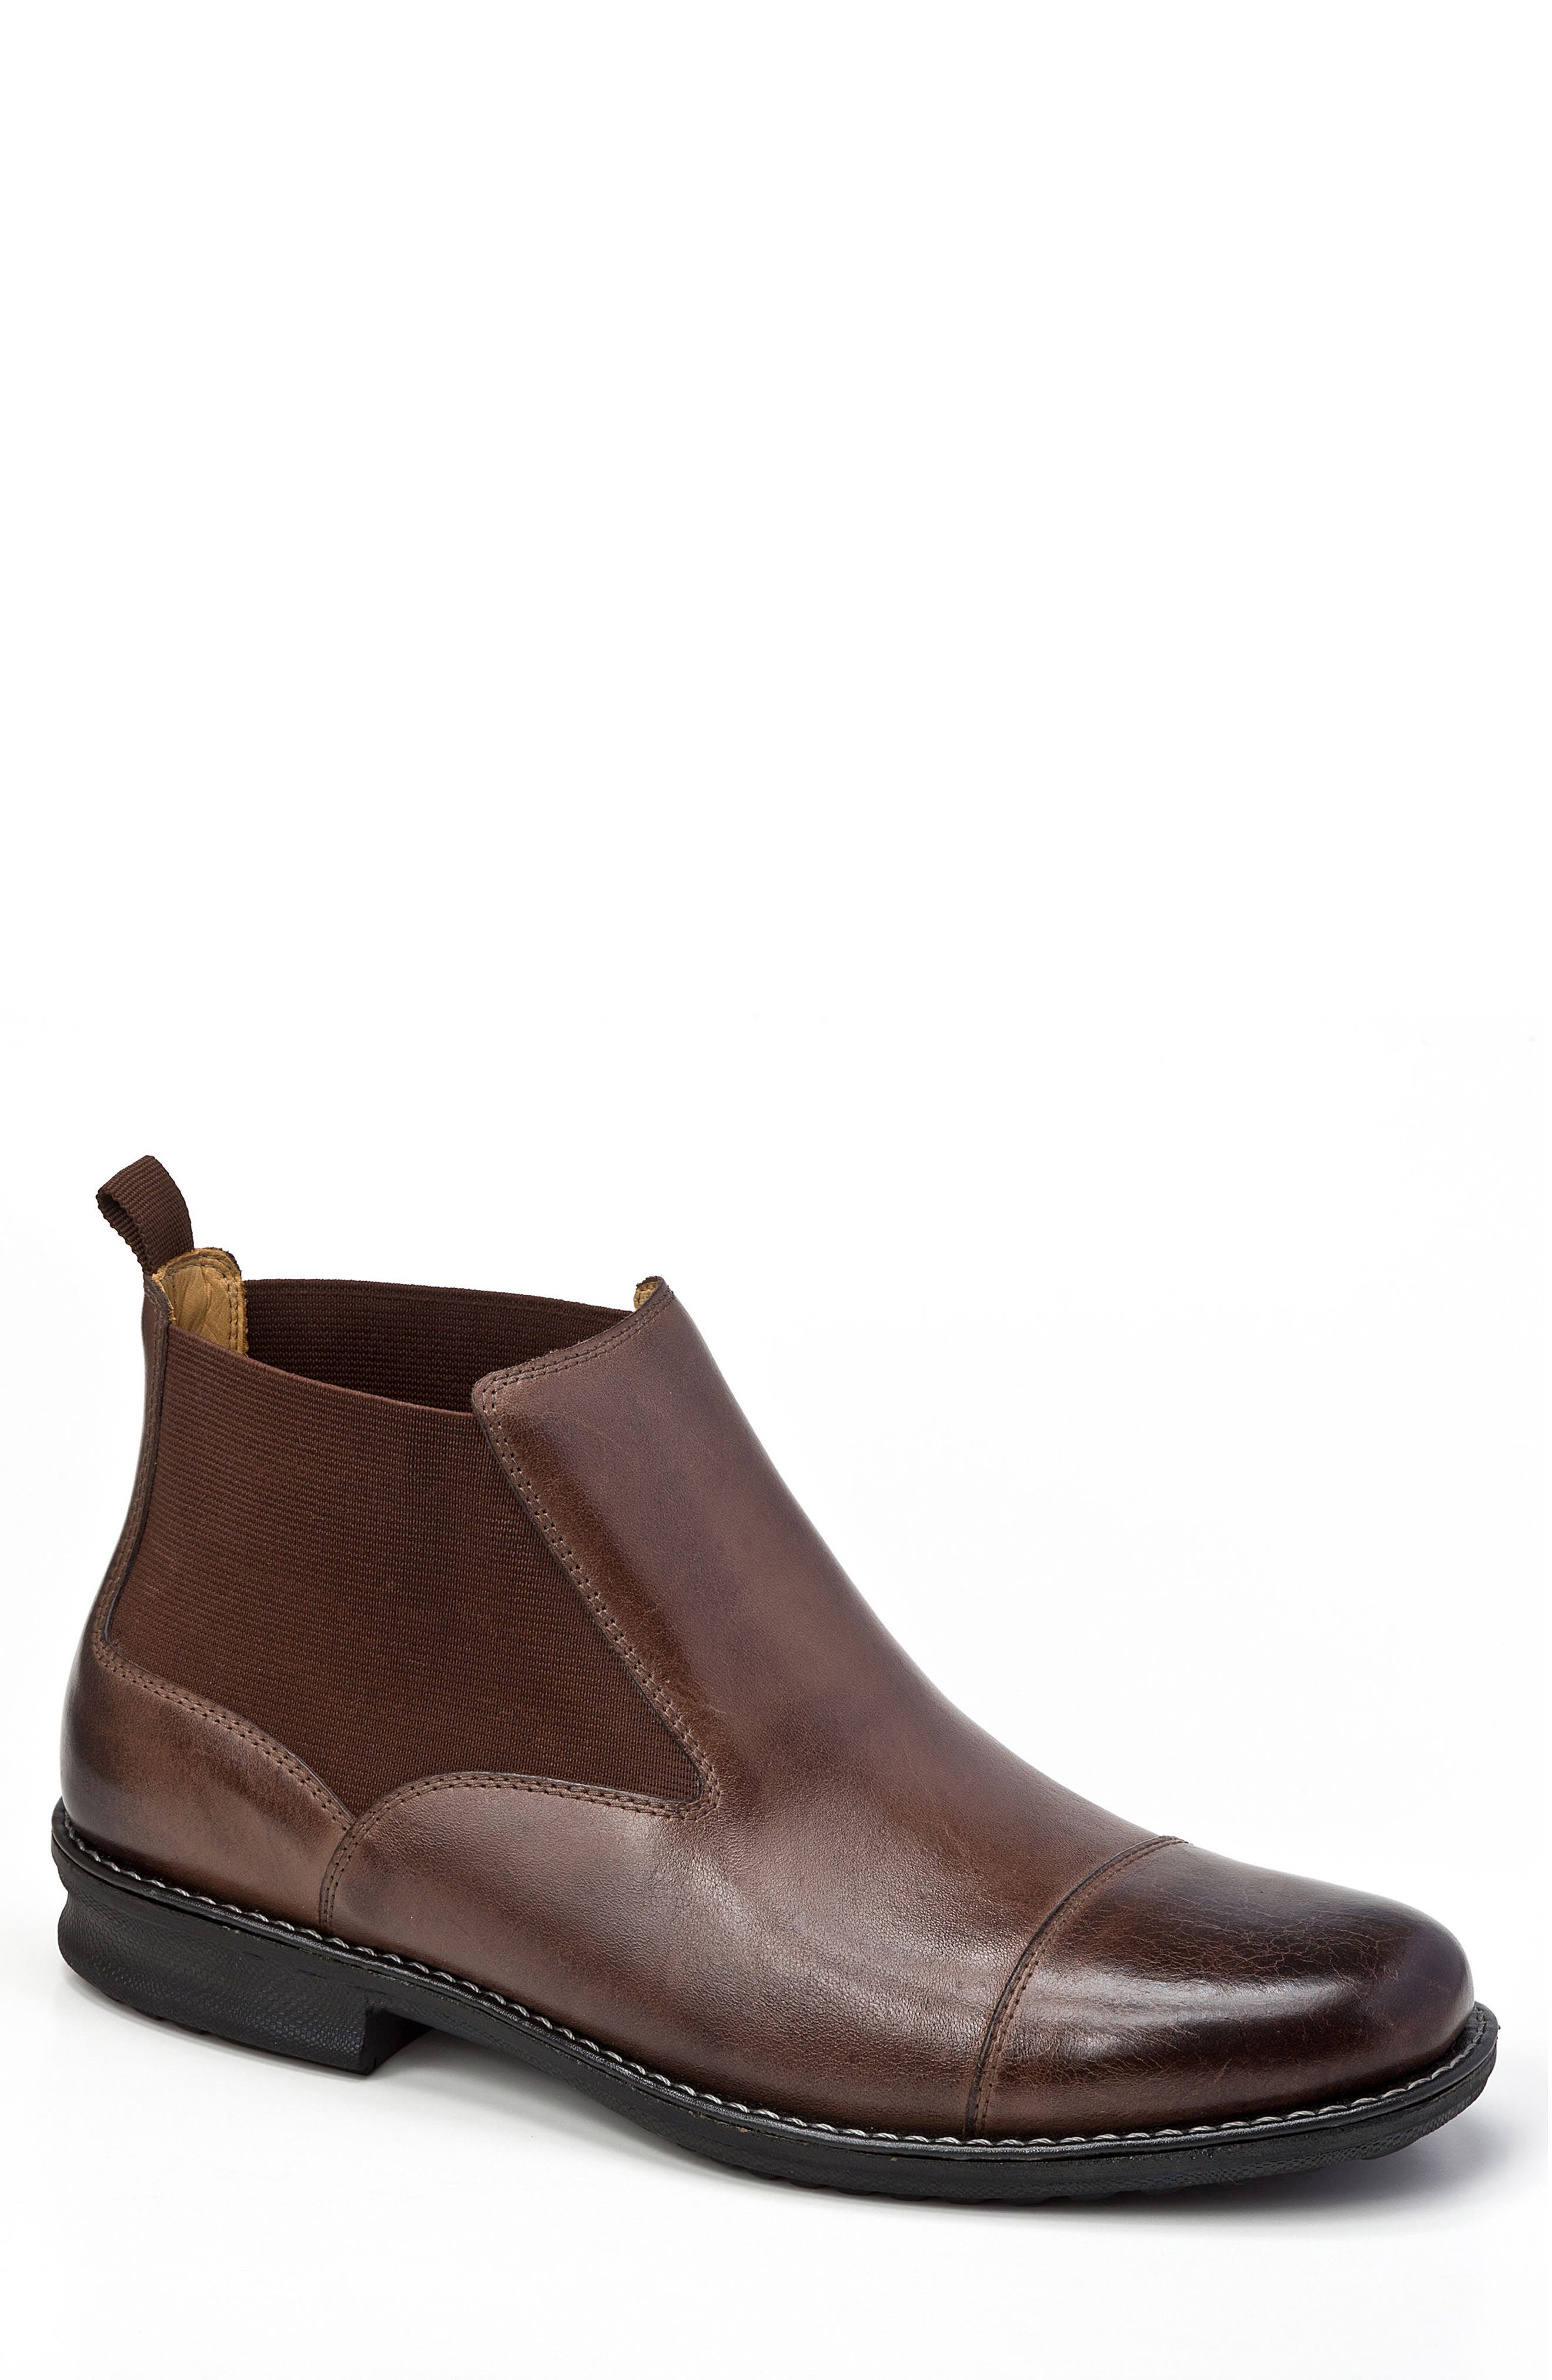 Main Image - Sandro Moscoloni Norbert Chelsea Boot (Men)